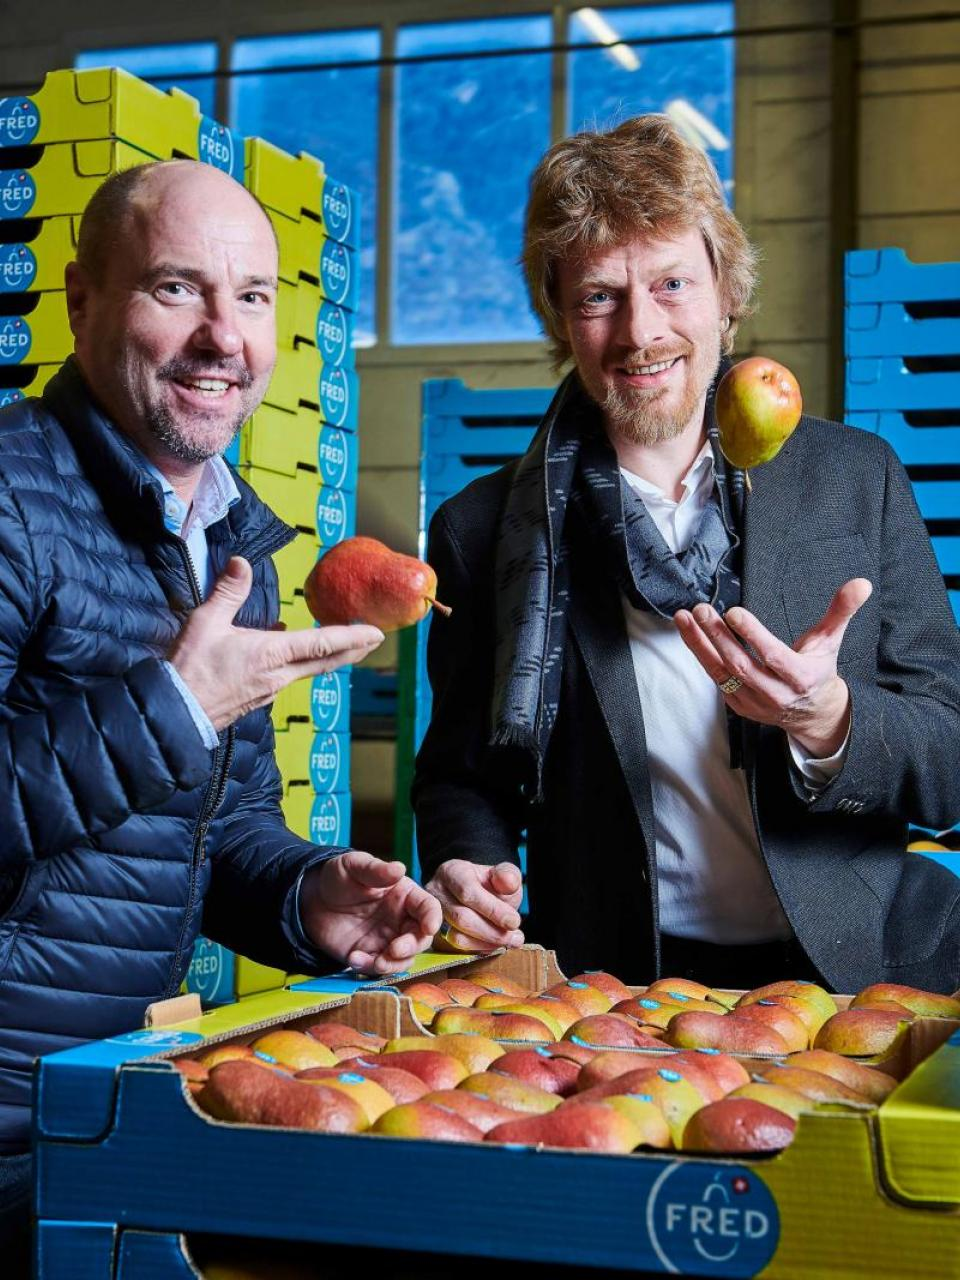 Michael Weber, head of VariCom, and Danilo Christen, creater of the variety © Sedrik Nemeth